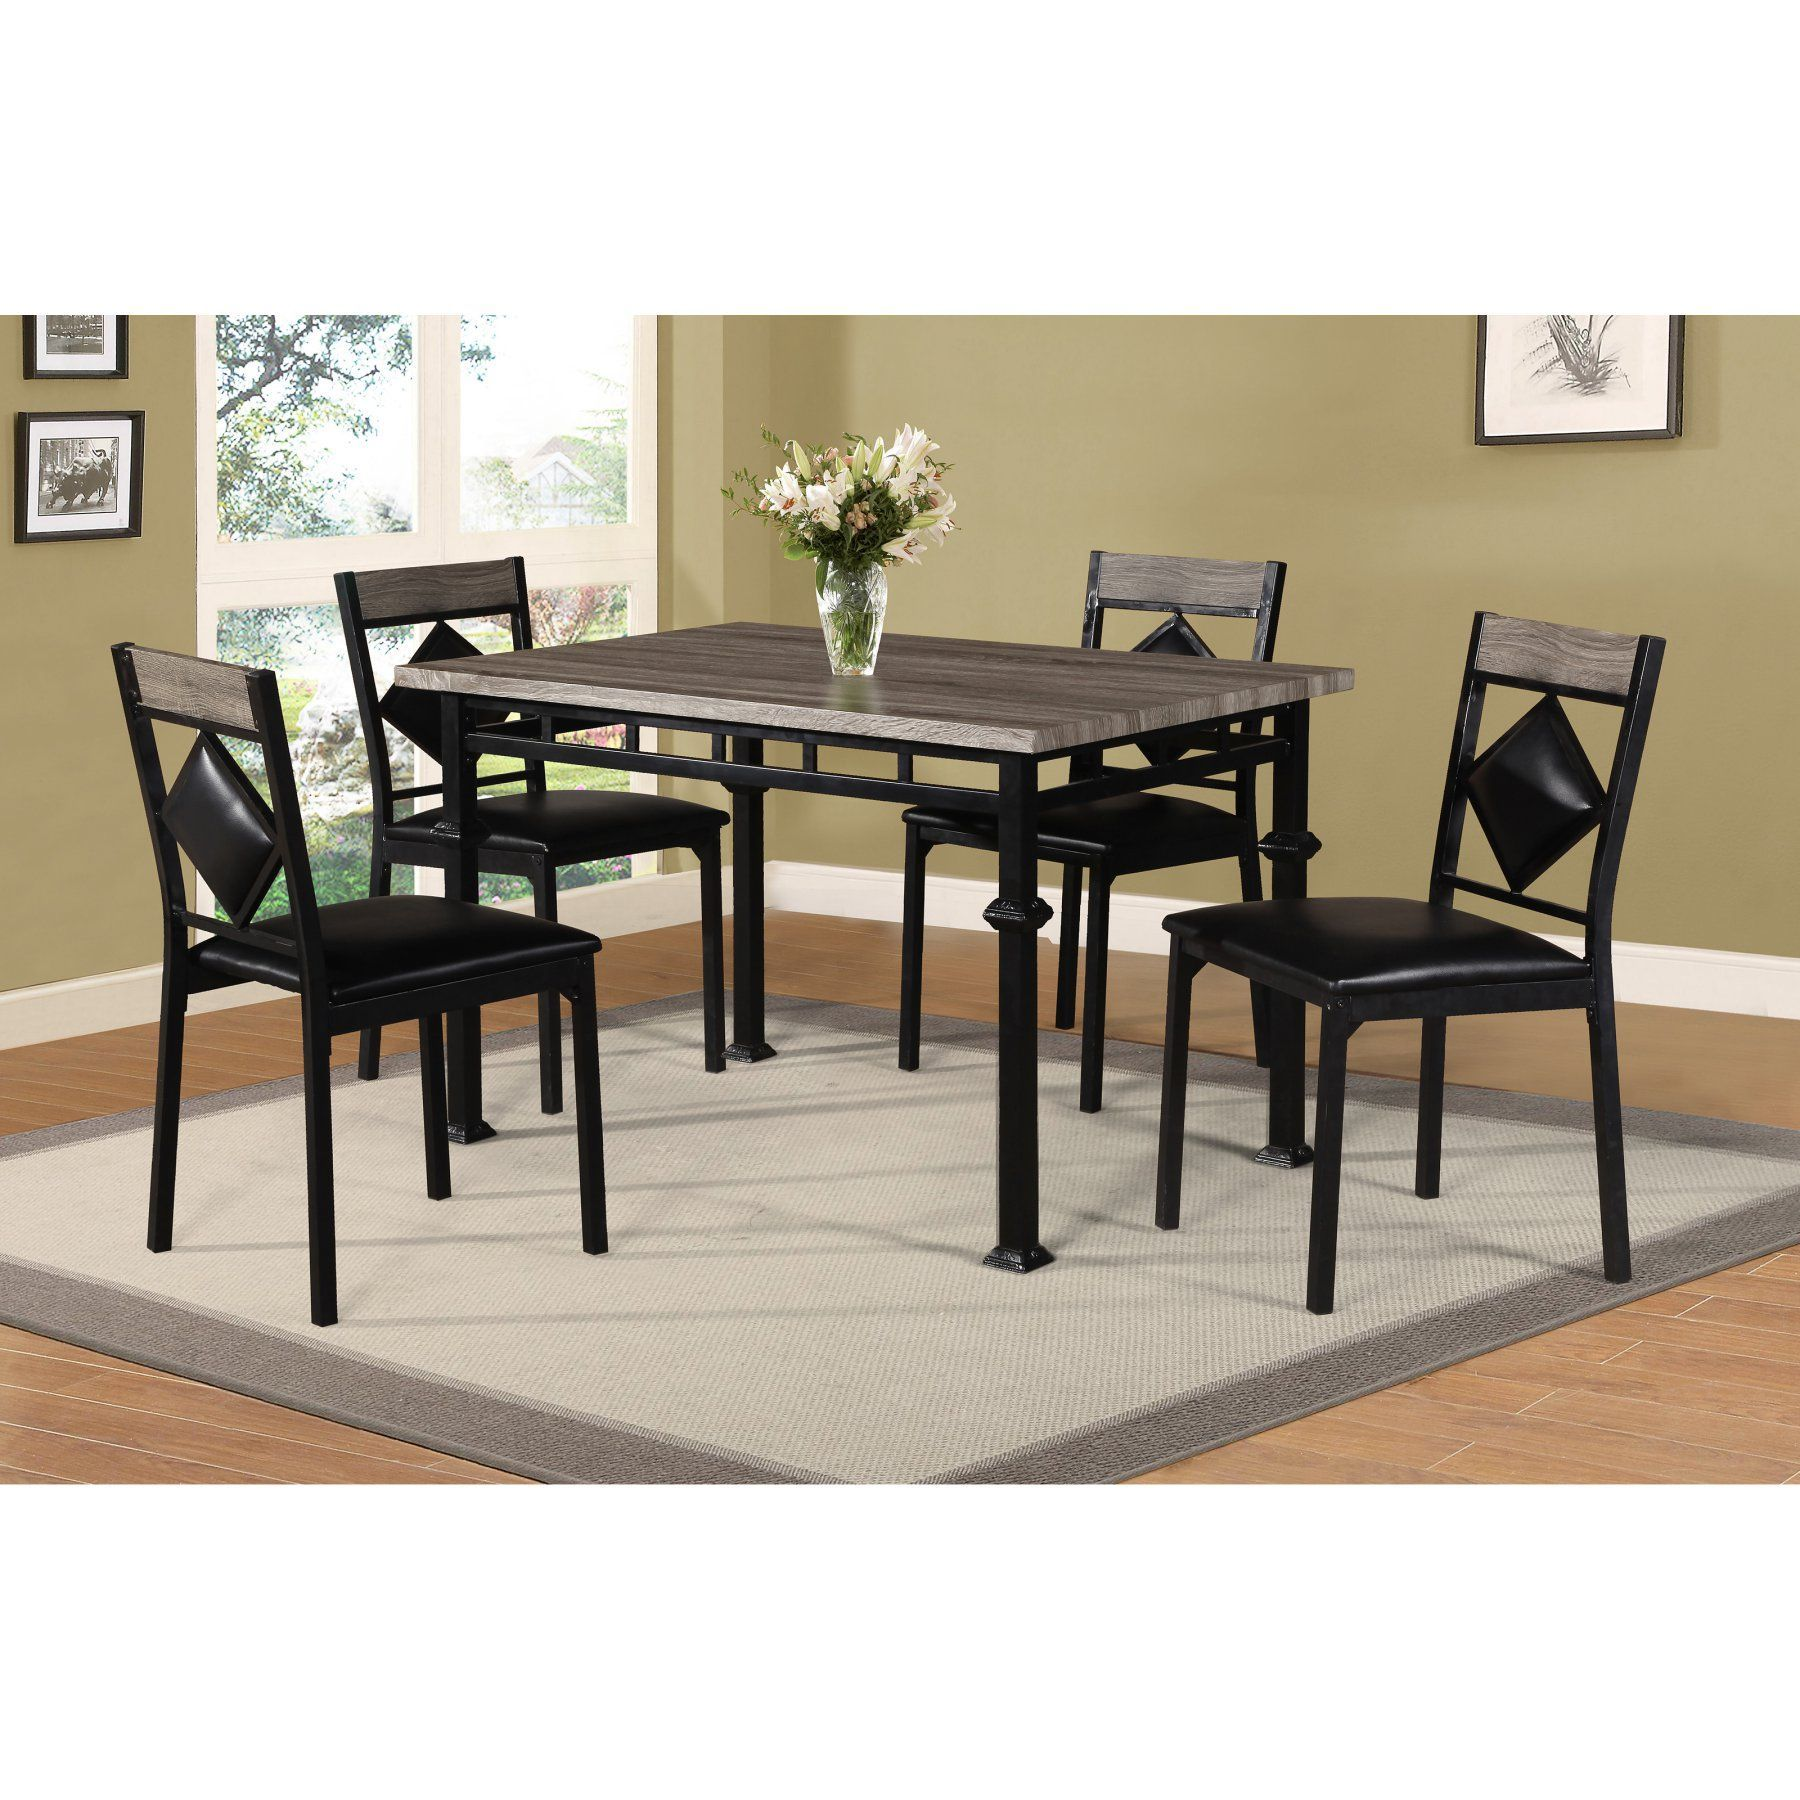 Home Source Industries 5 Piece Metal Dining Table Set 4395